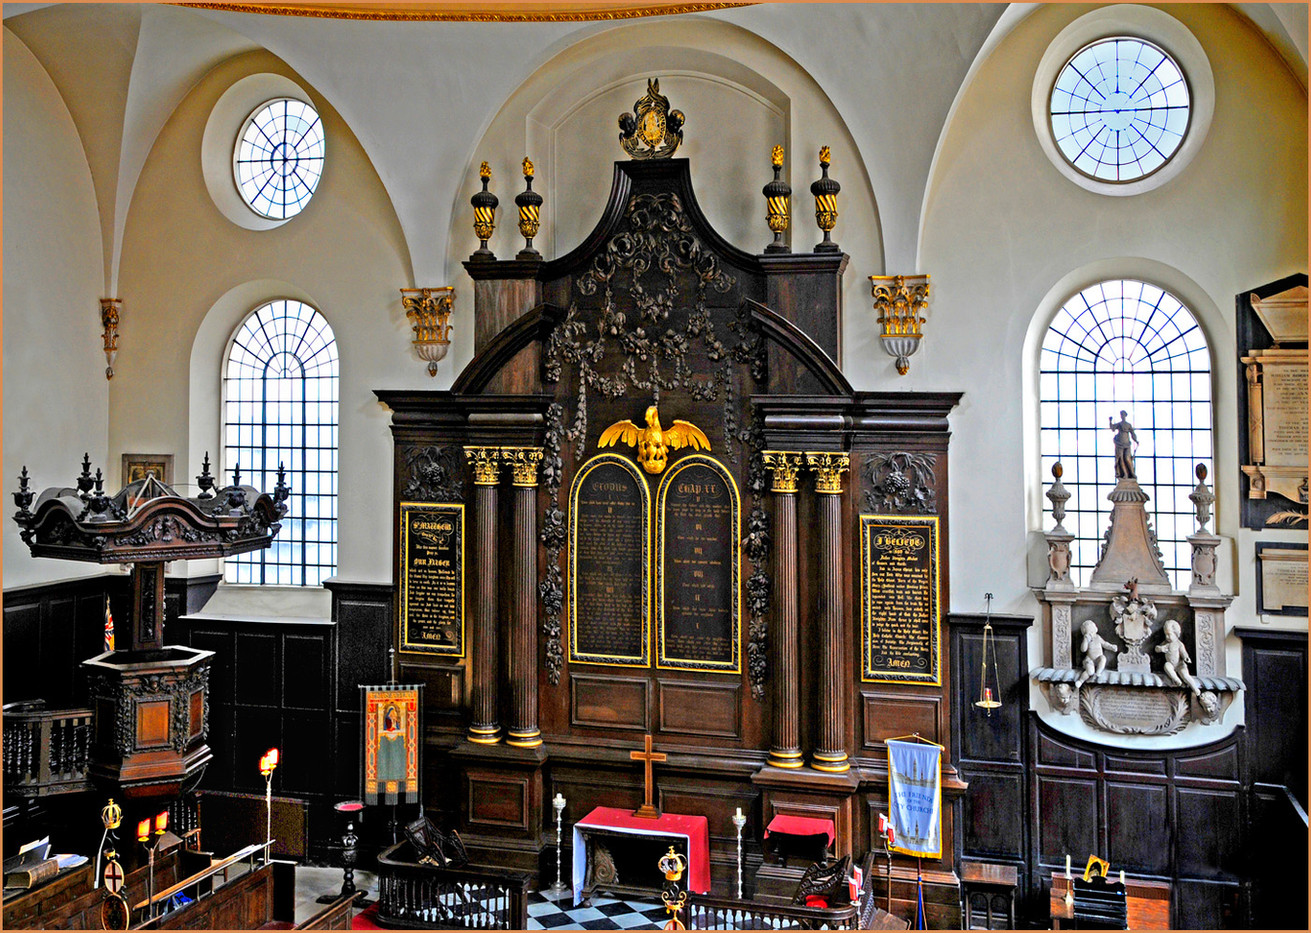 18 ST MARY ABCHURCH, LONDON by Keith Evans